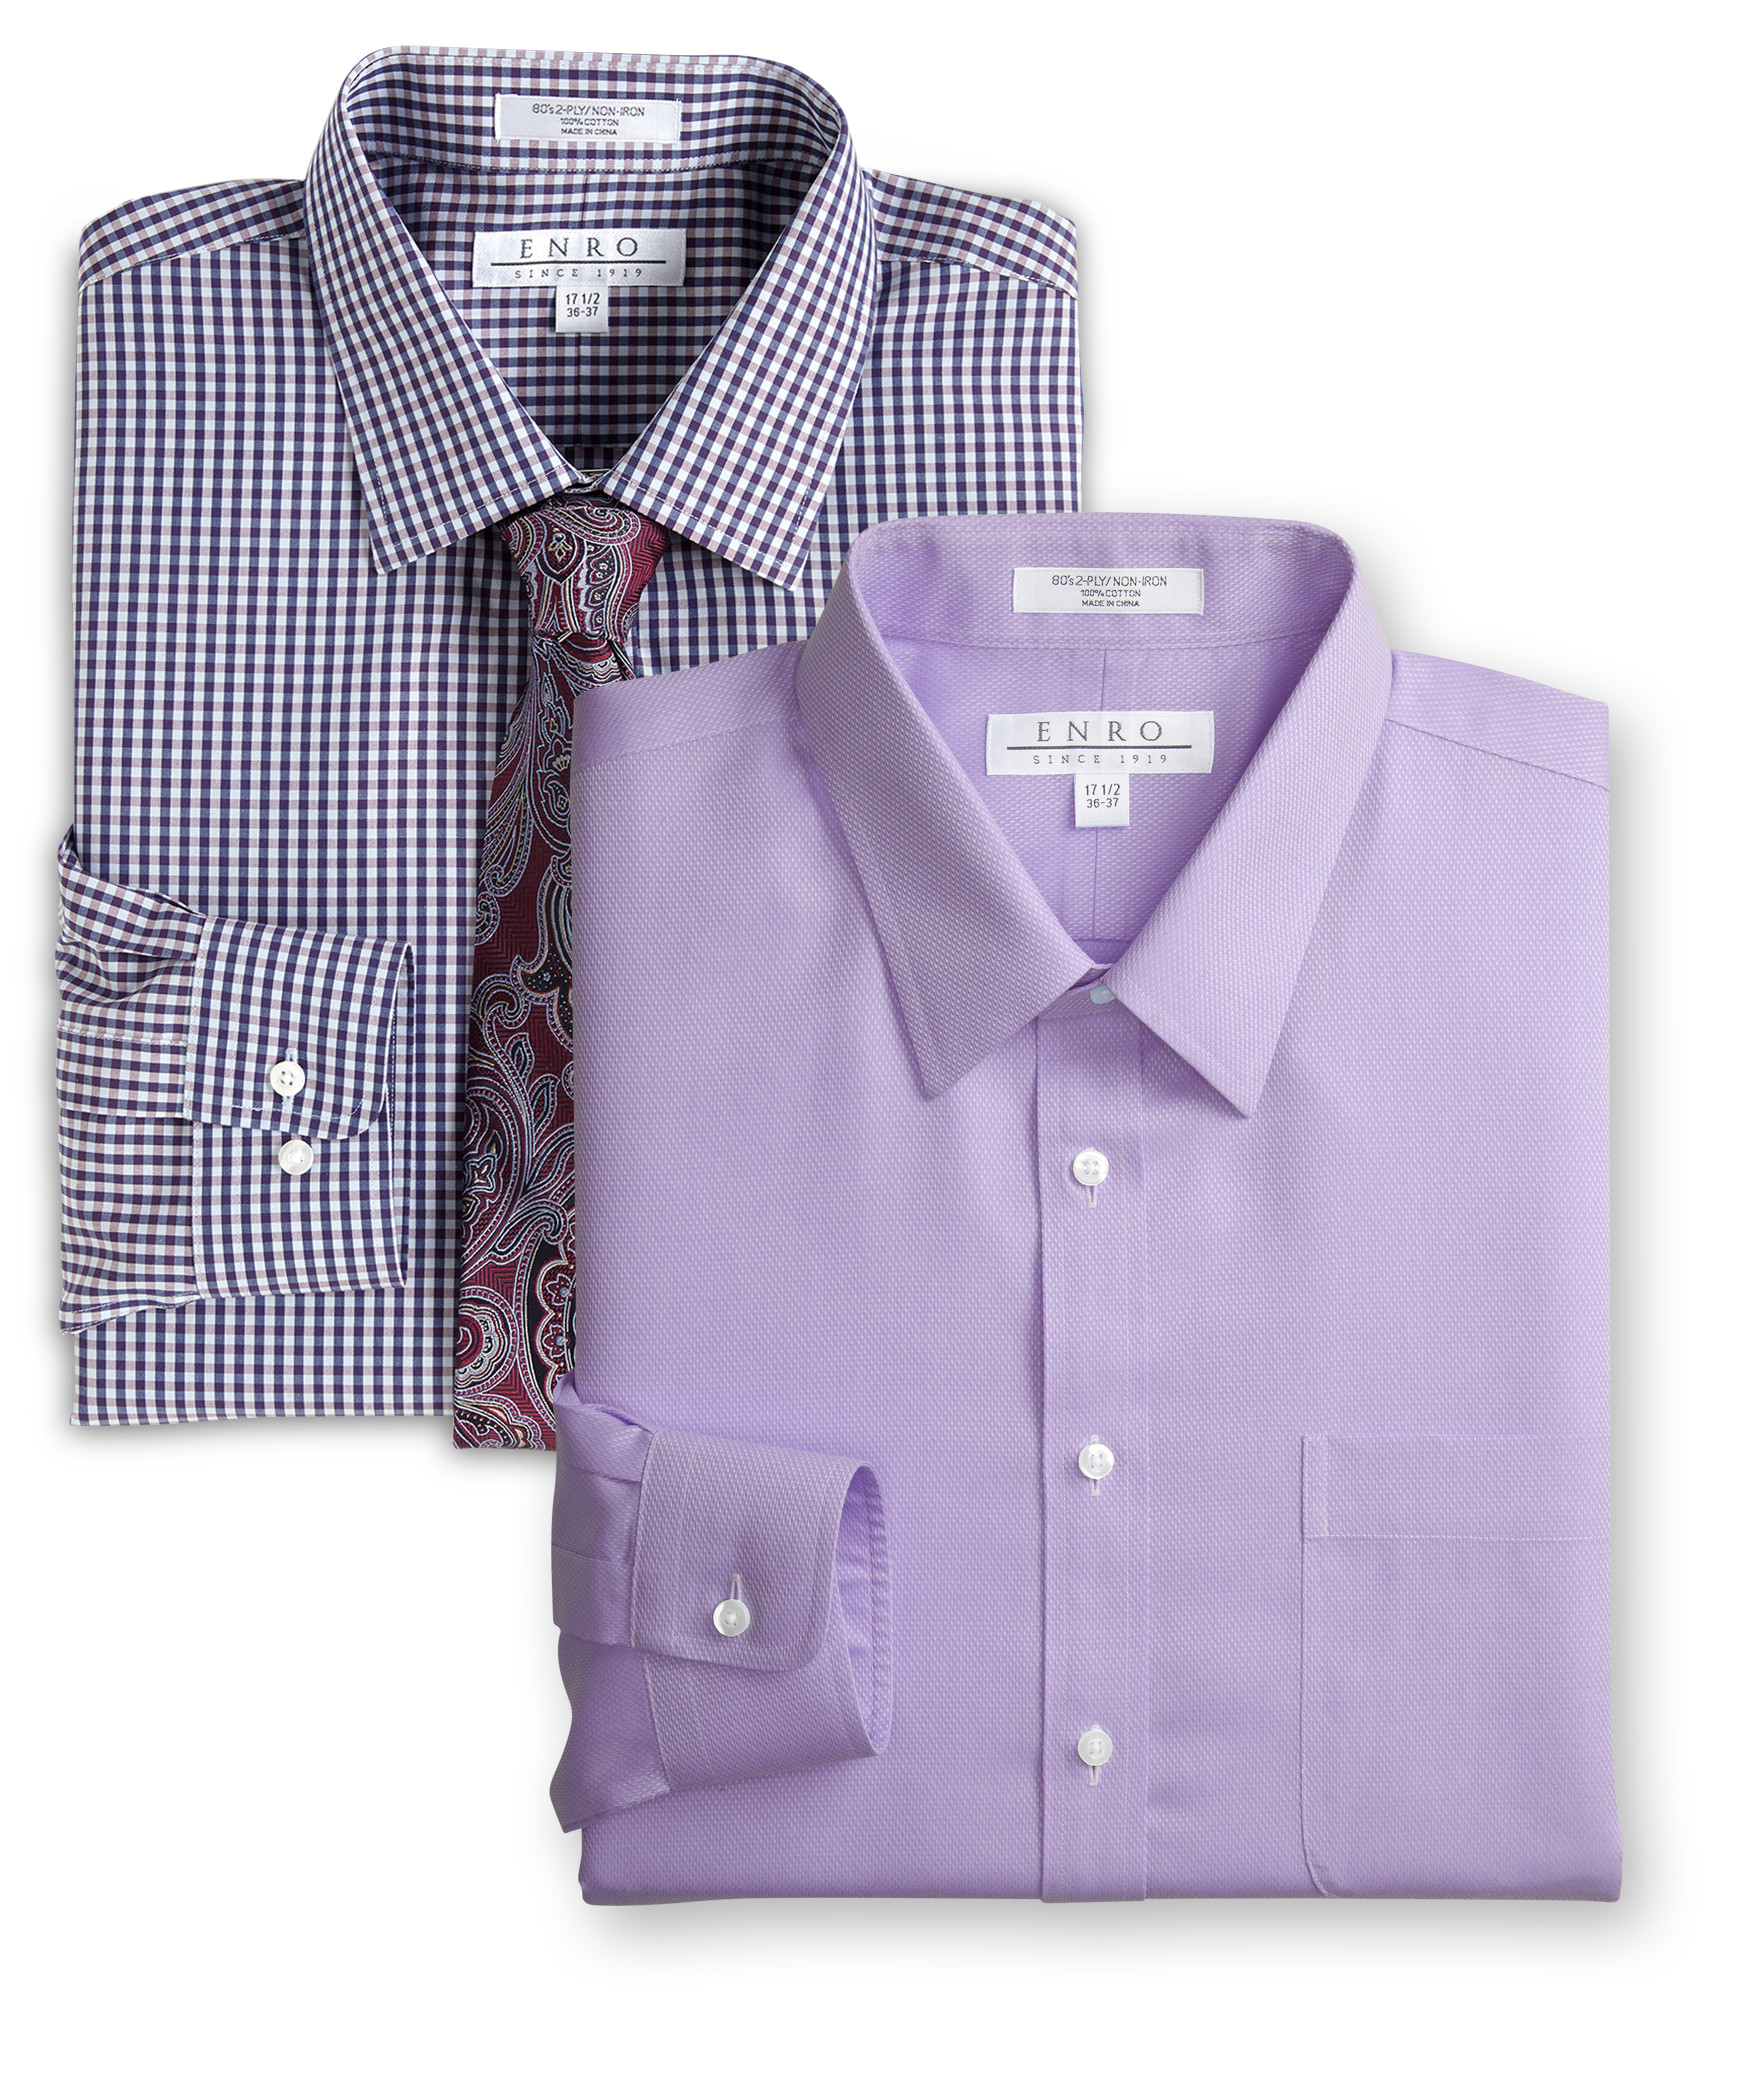 MIX & MATCH ENRO $75 LONG-SLEEVE DRESS SHIRTS